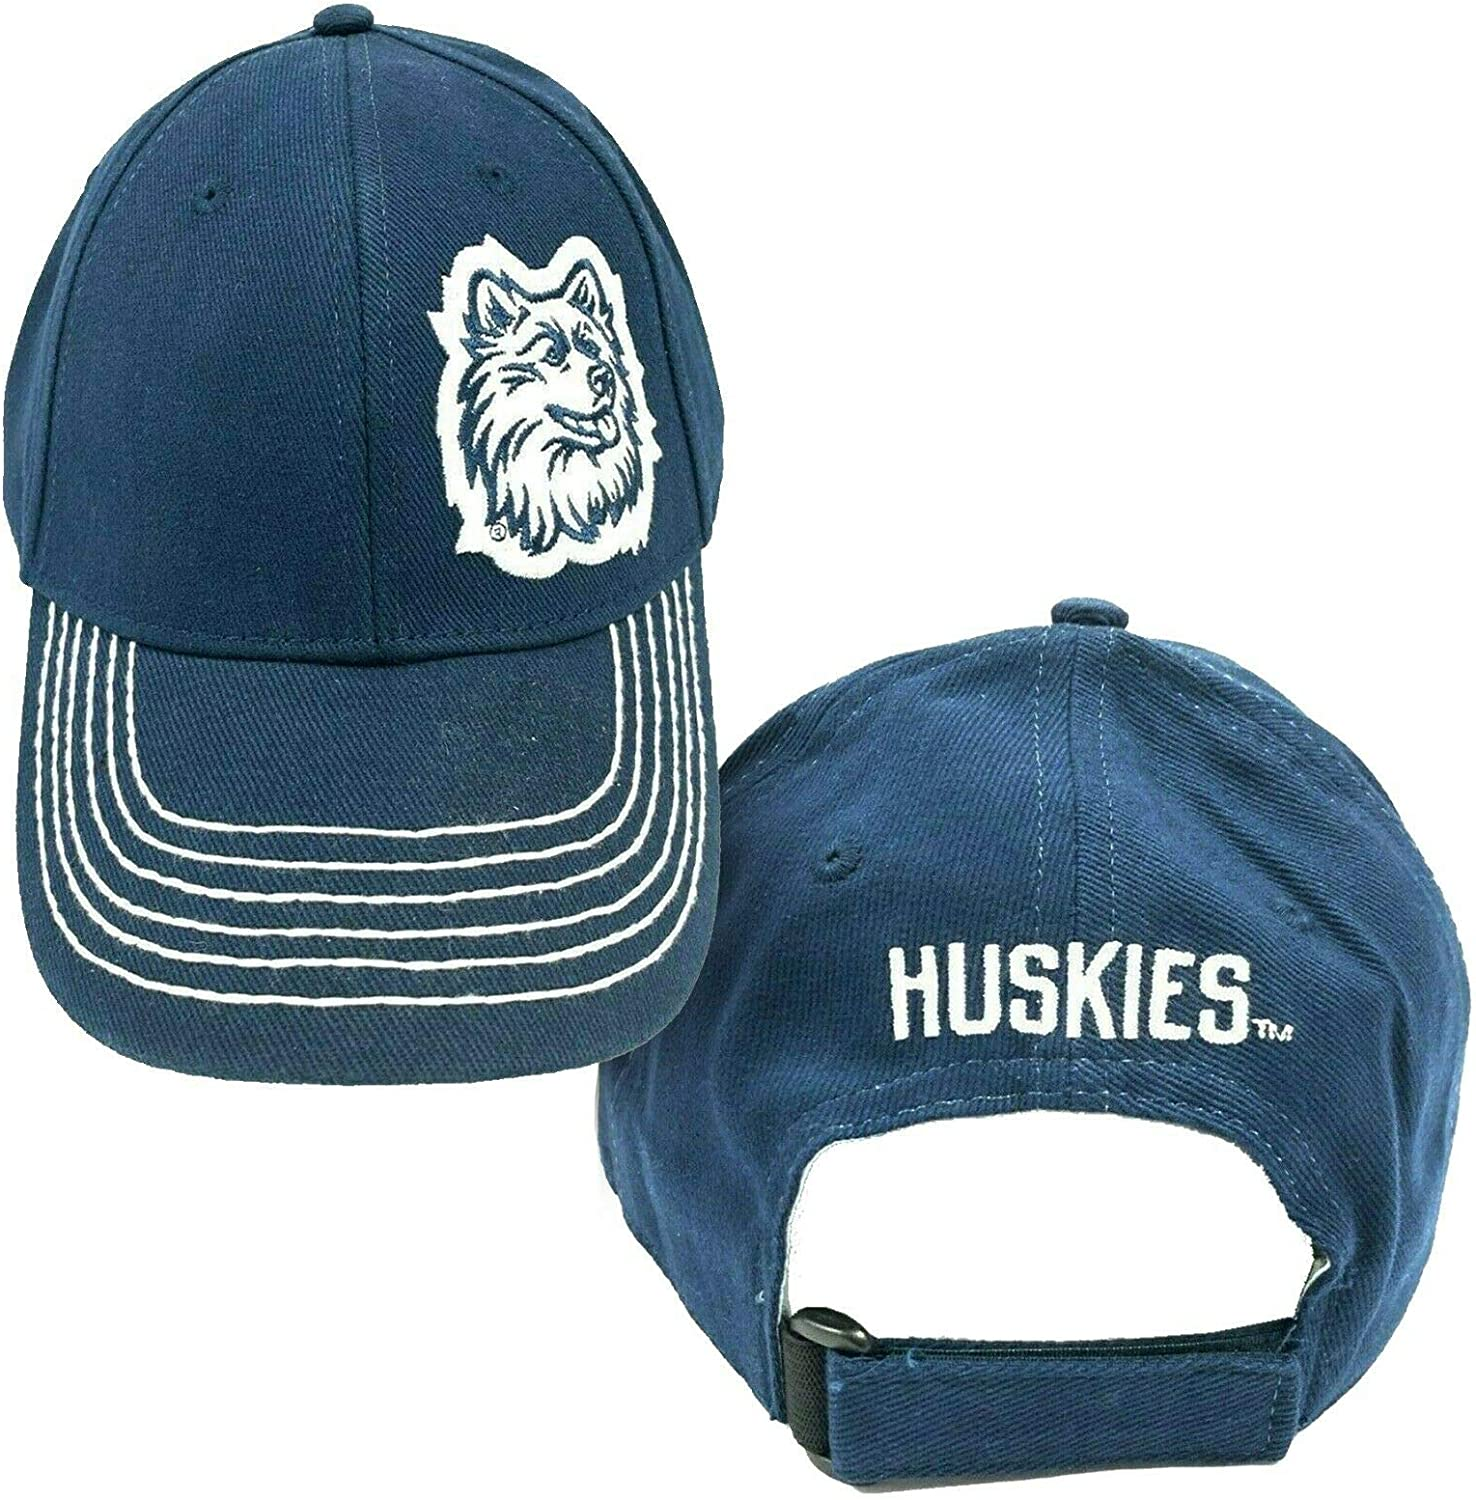 NCAA by Signatures UConn Huskies Navy Embroidered Adjustable D-Fit Cap